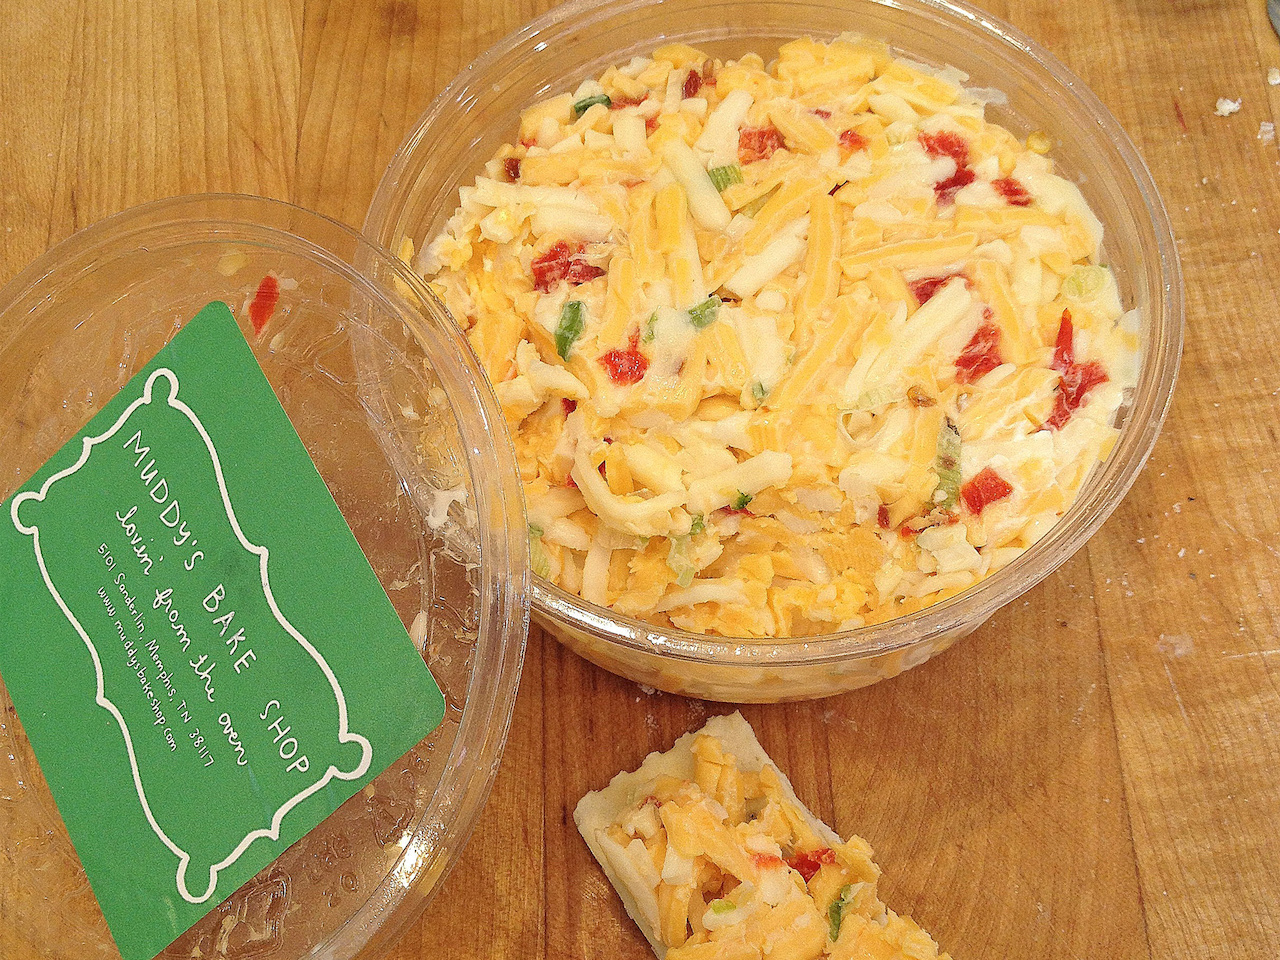 The Muddy's Bake Shop pimento cheese is divine!